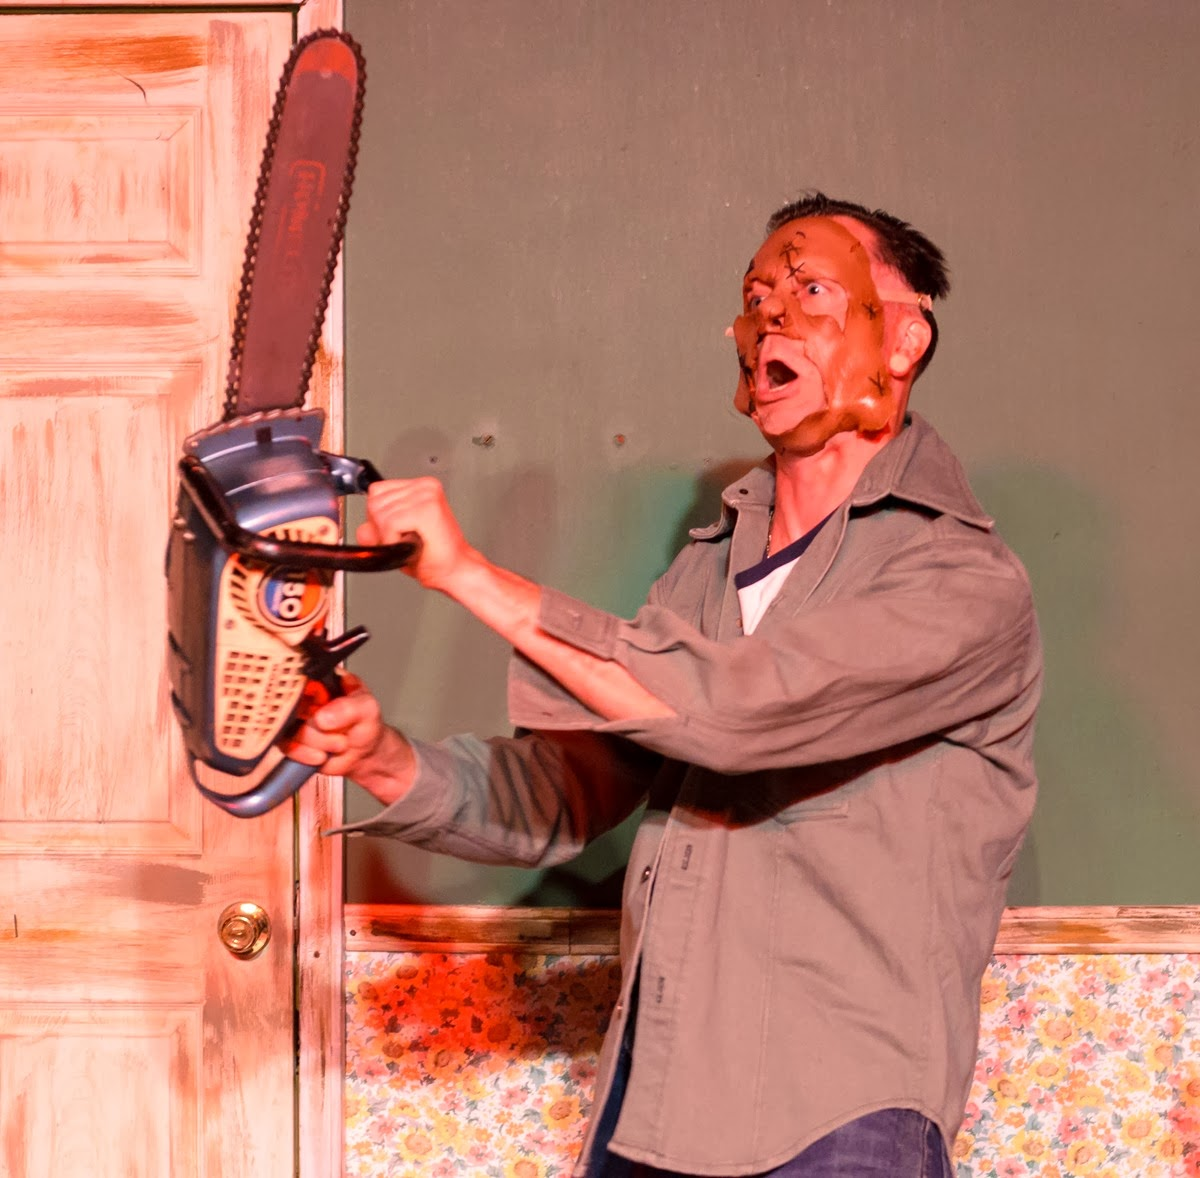 Funny farcical musical blood bath at blank for What is farcical used for